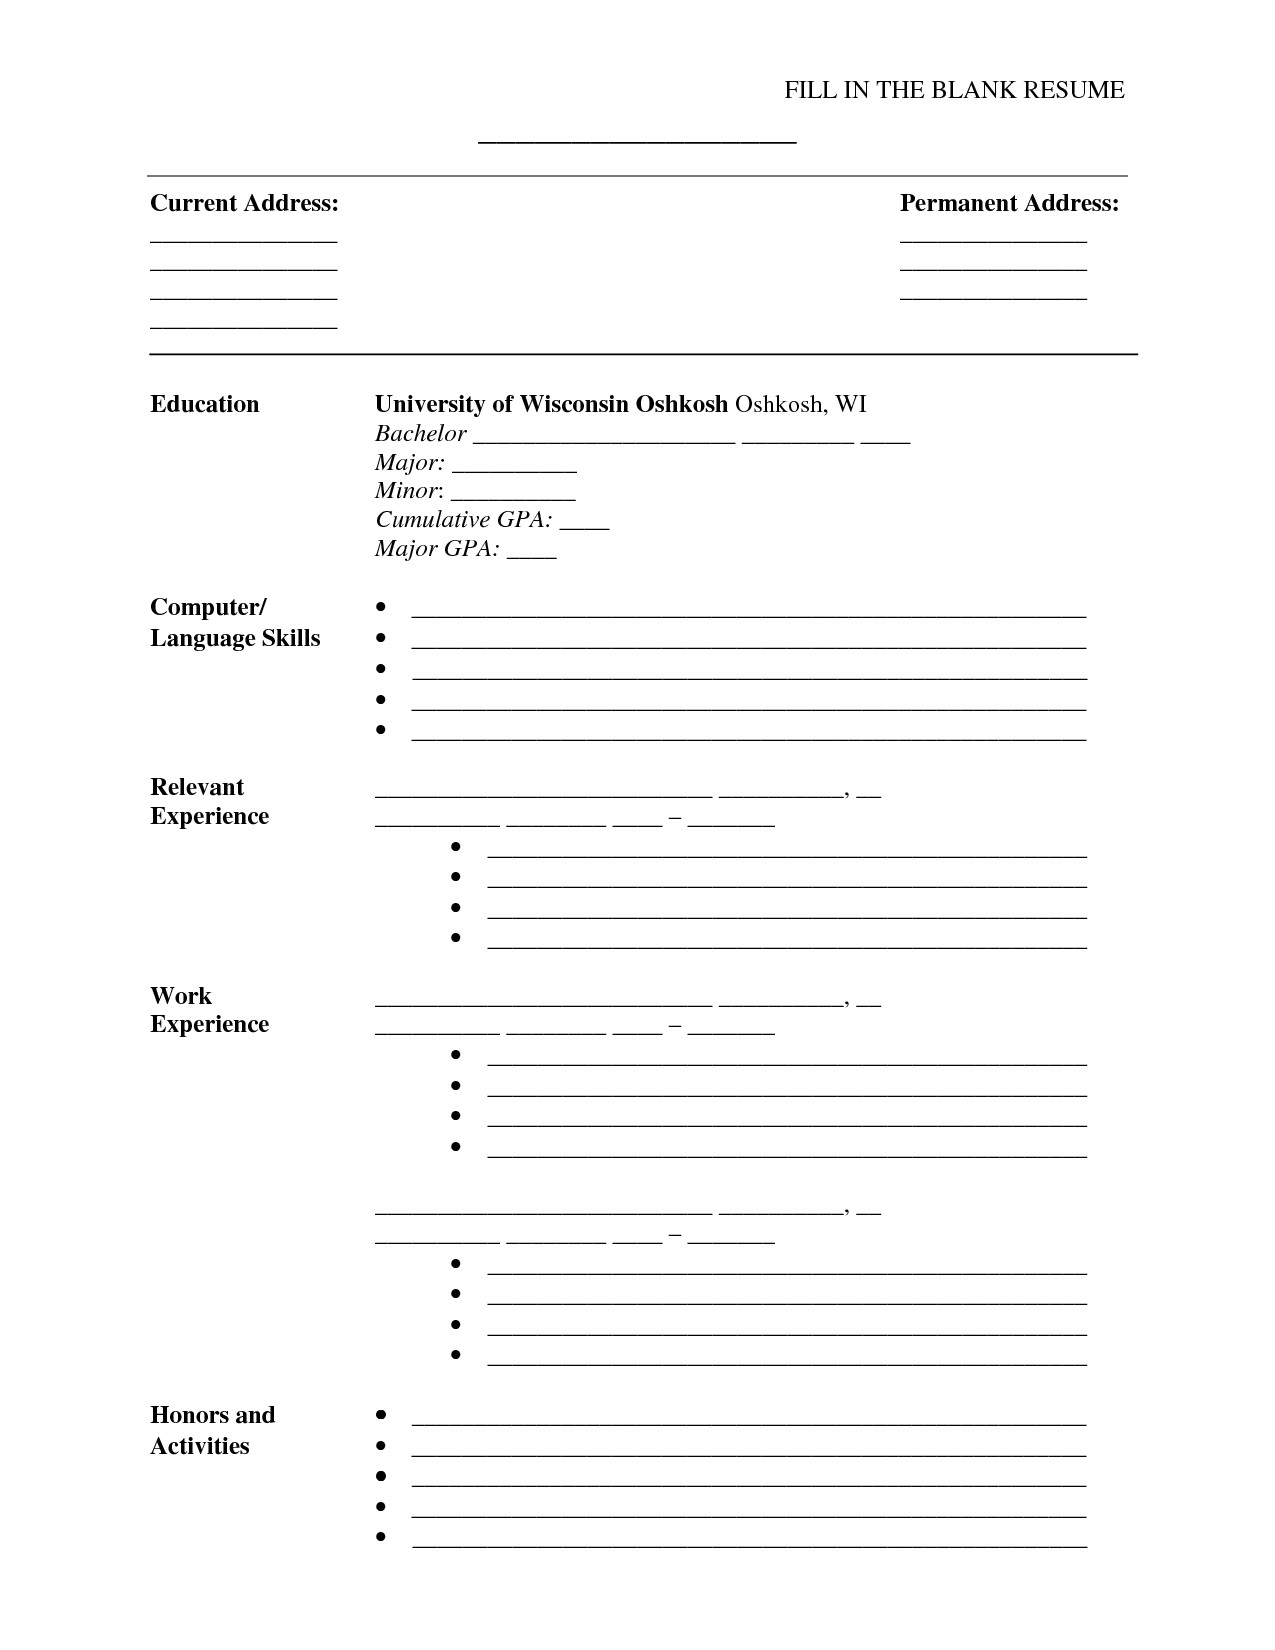 Fill In the Blank Resume for Students Fill In the Blank Resume Pdf Http Www Resumecareer